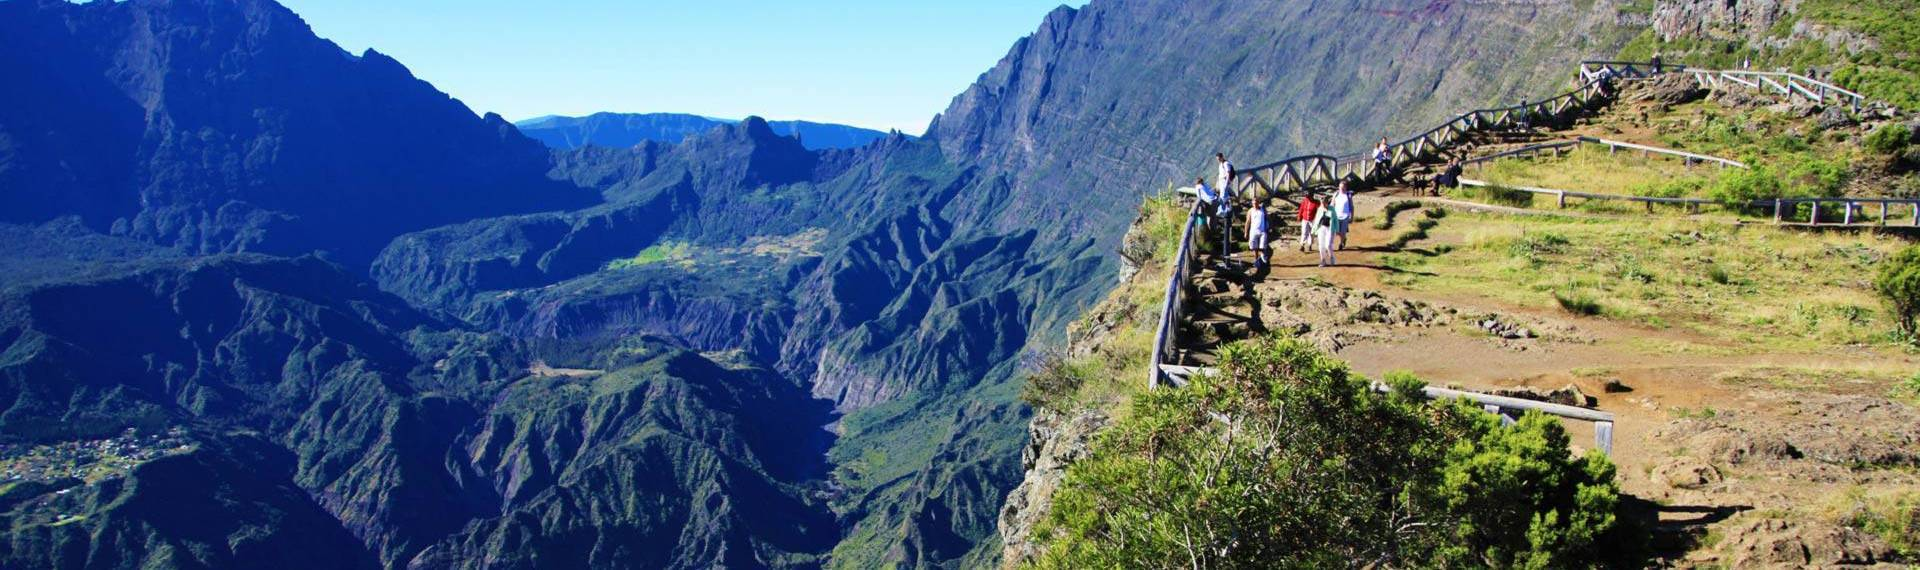 Reunion Island, Outdoor Openspaces